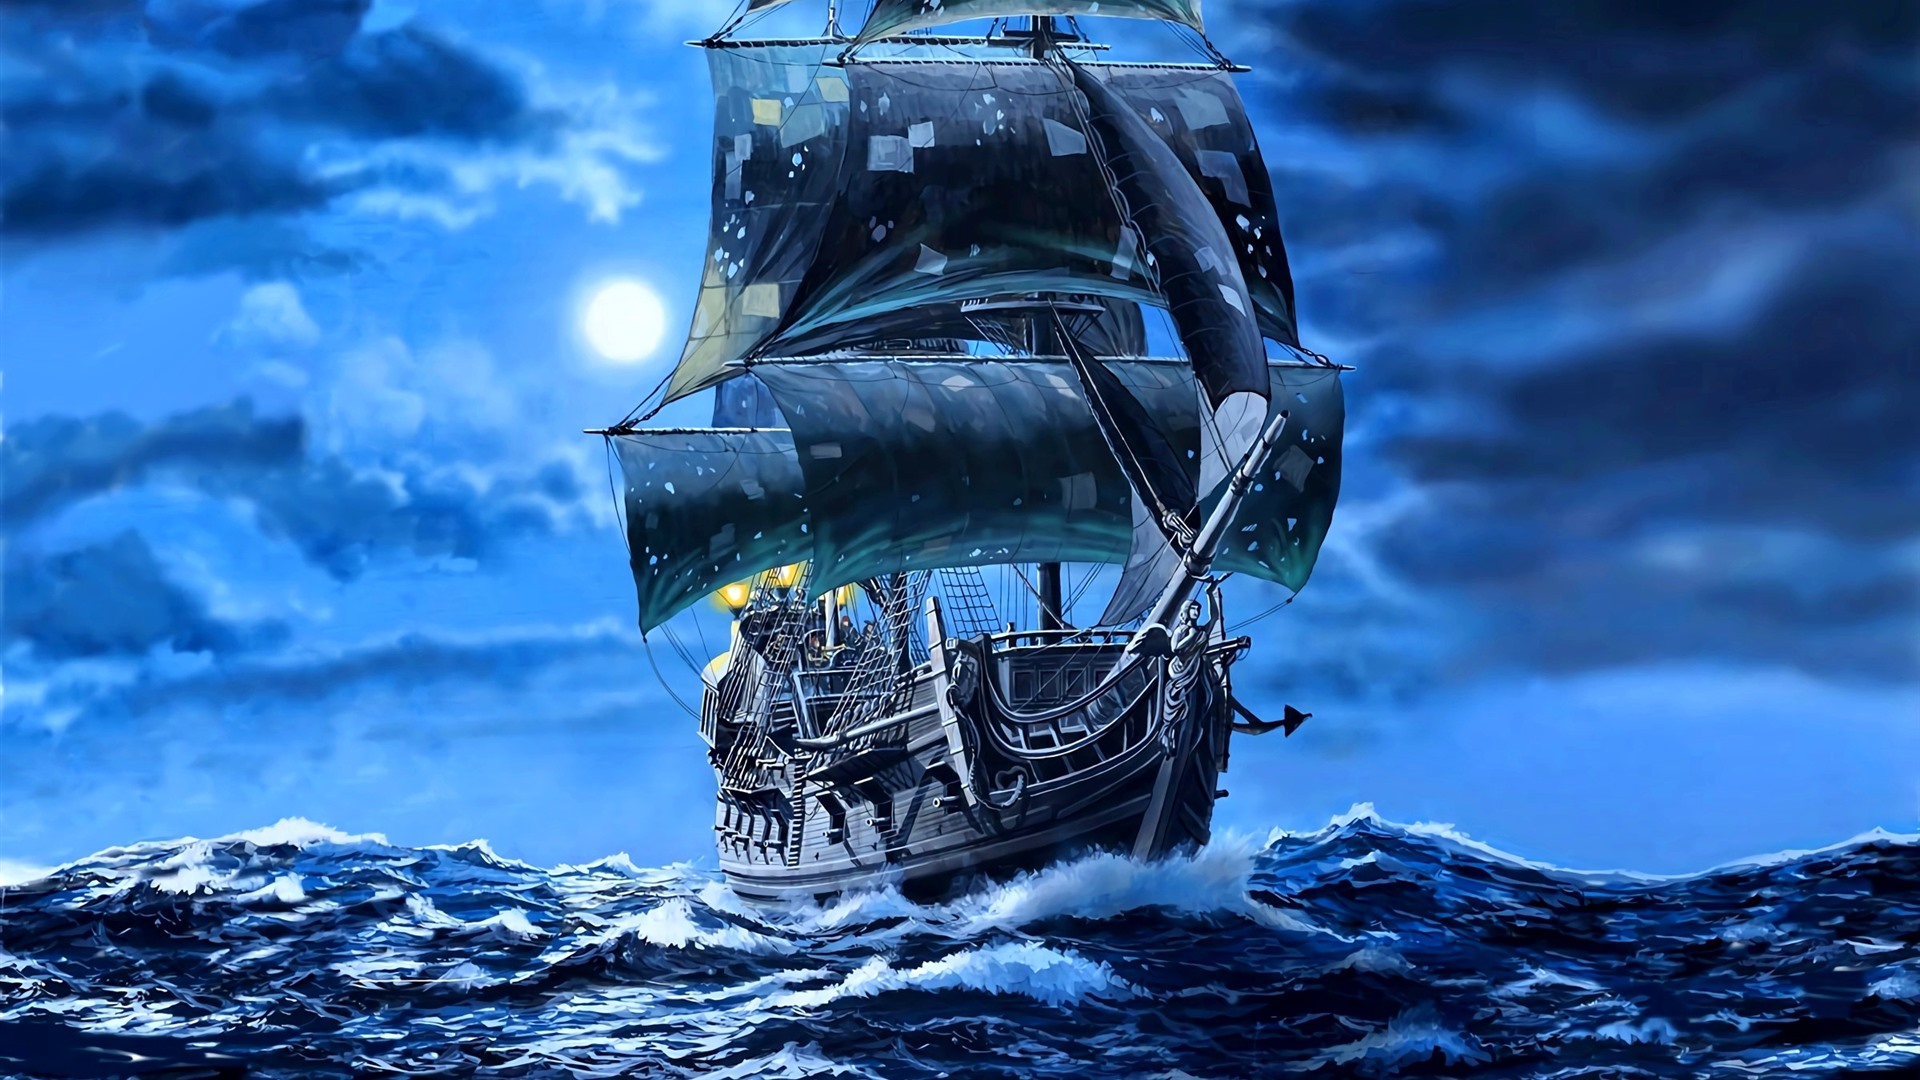 Black-pearl-sail-ship-pirates-sea-art-pi